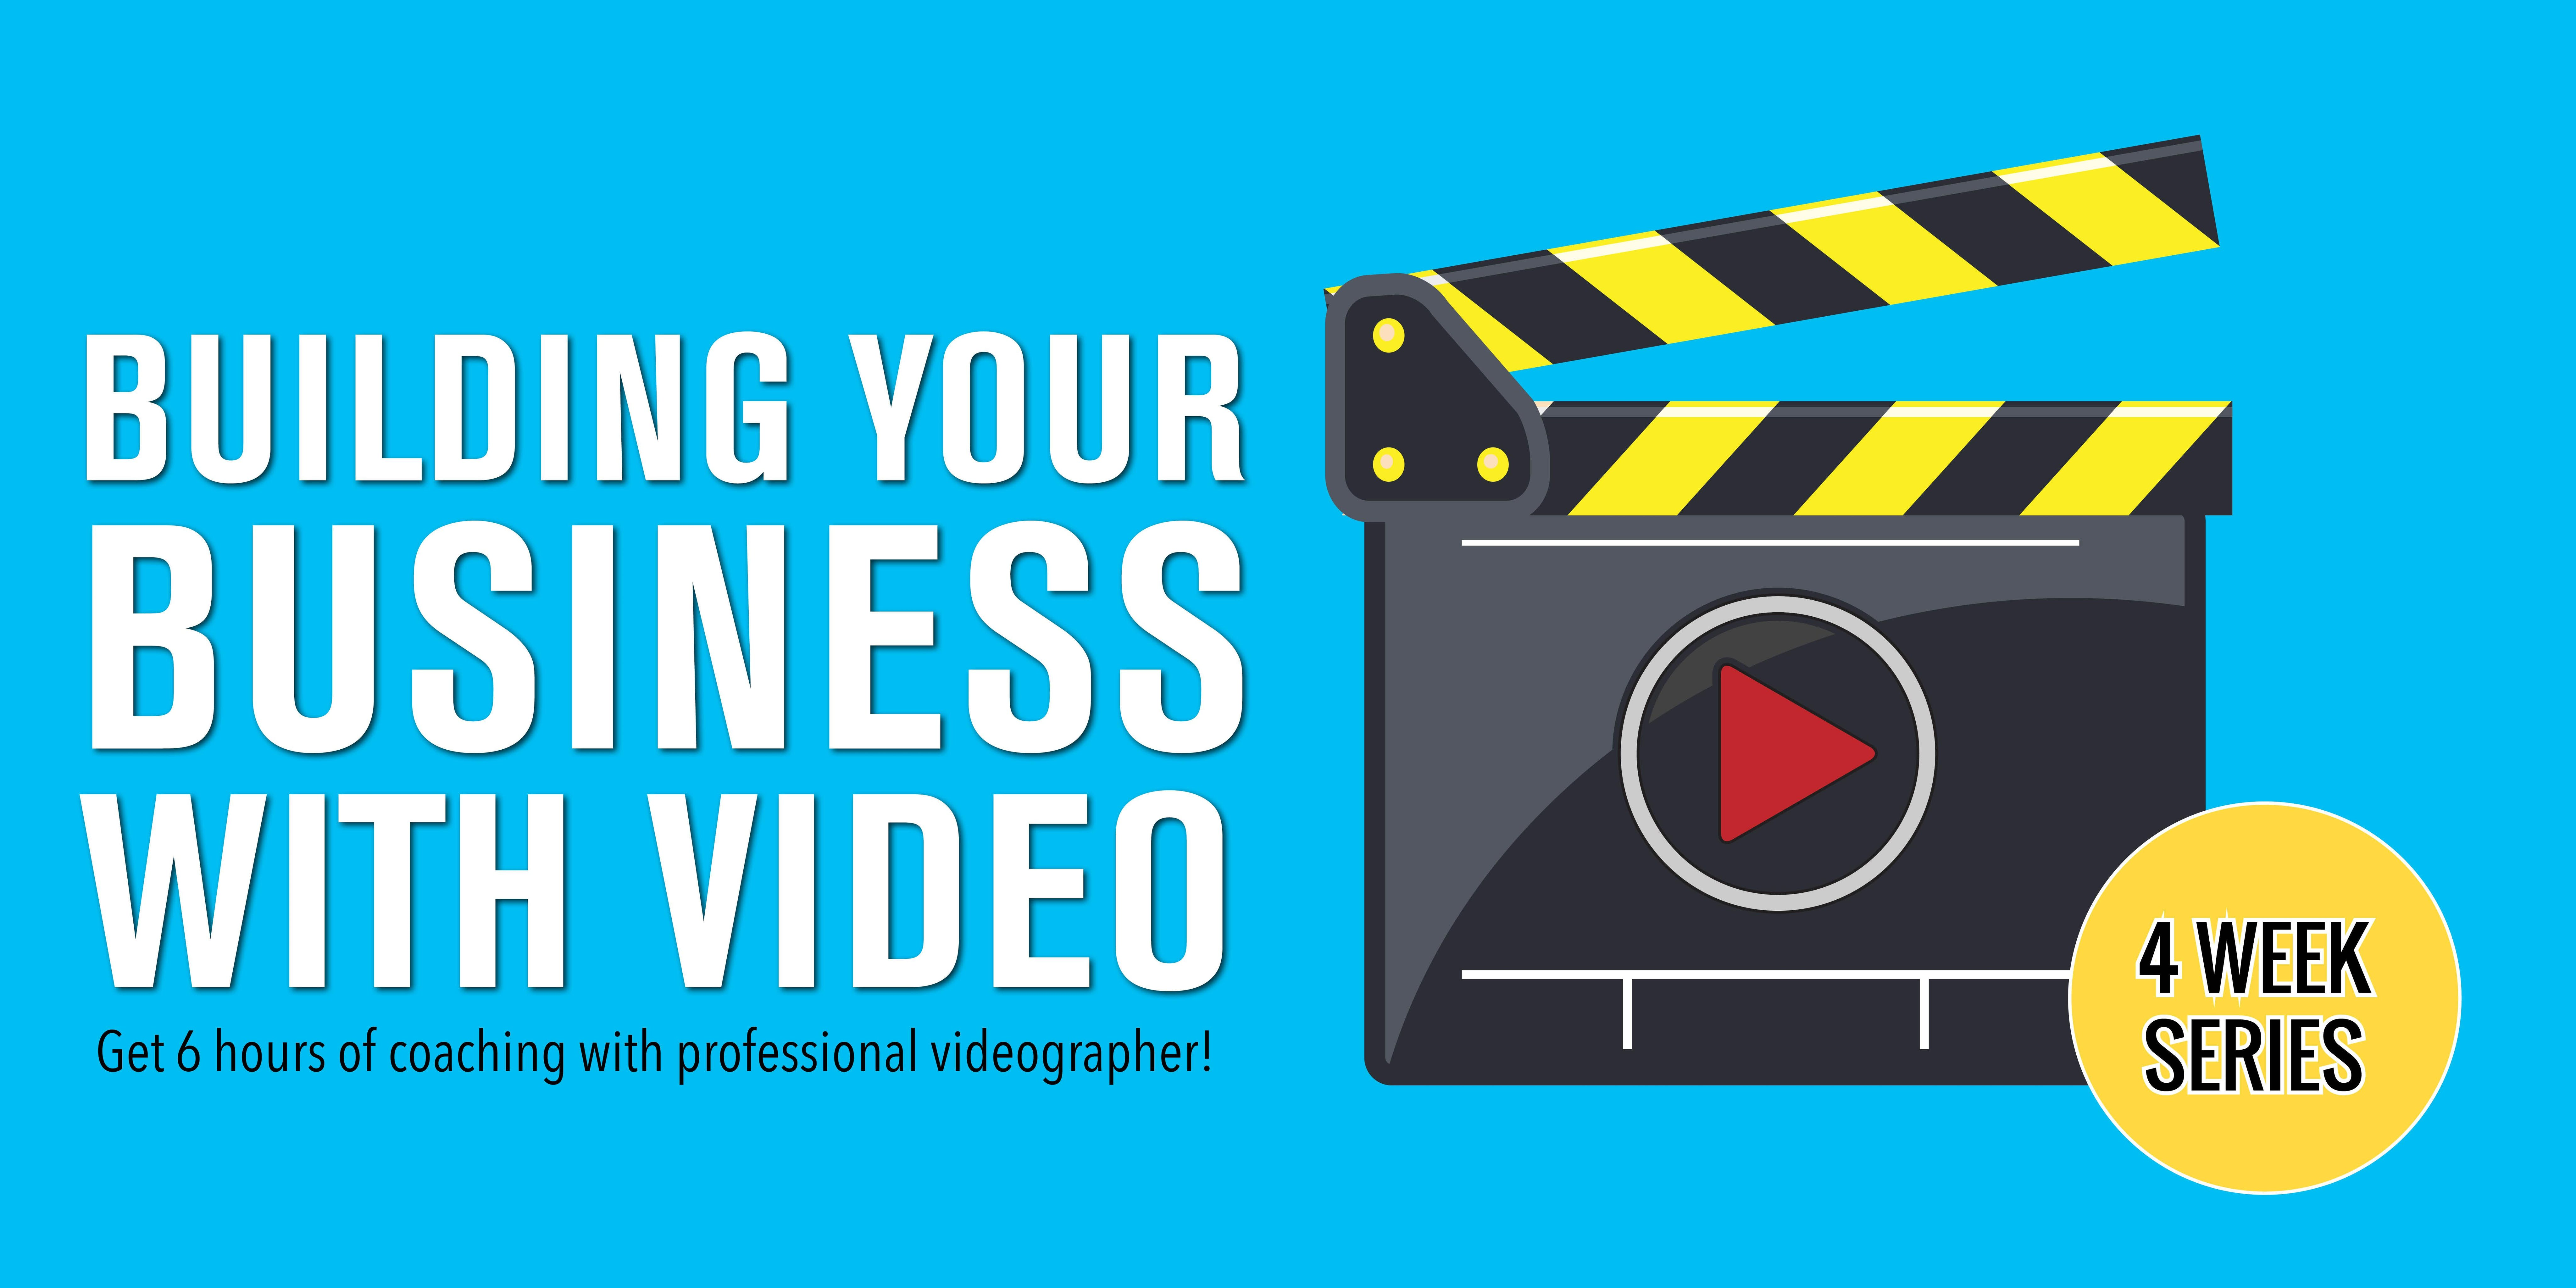 Building Your Business with Video 10/1, 10/8, 10/15, 10/22